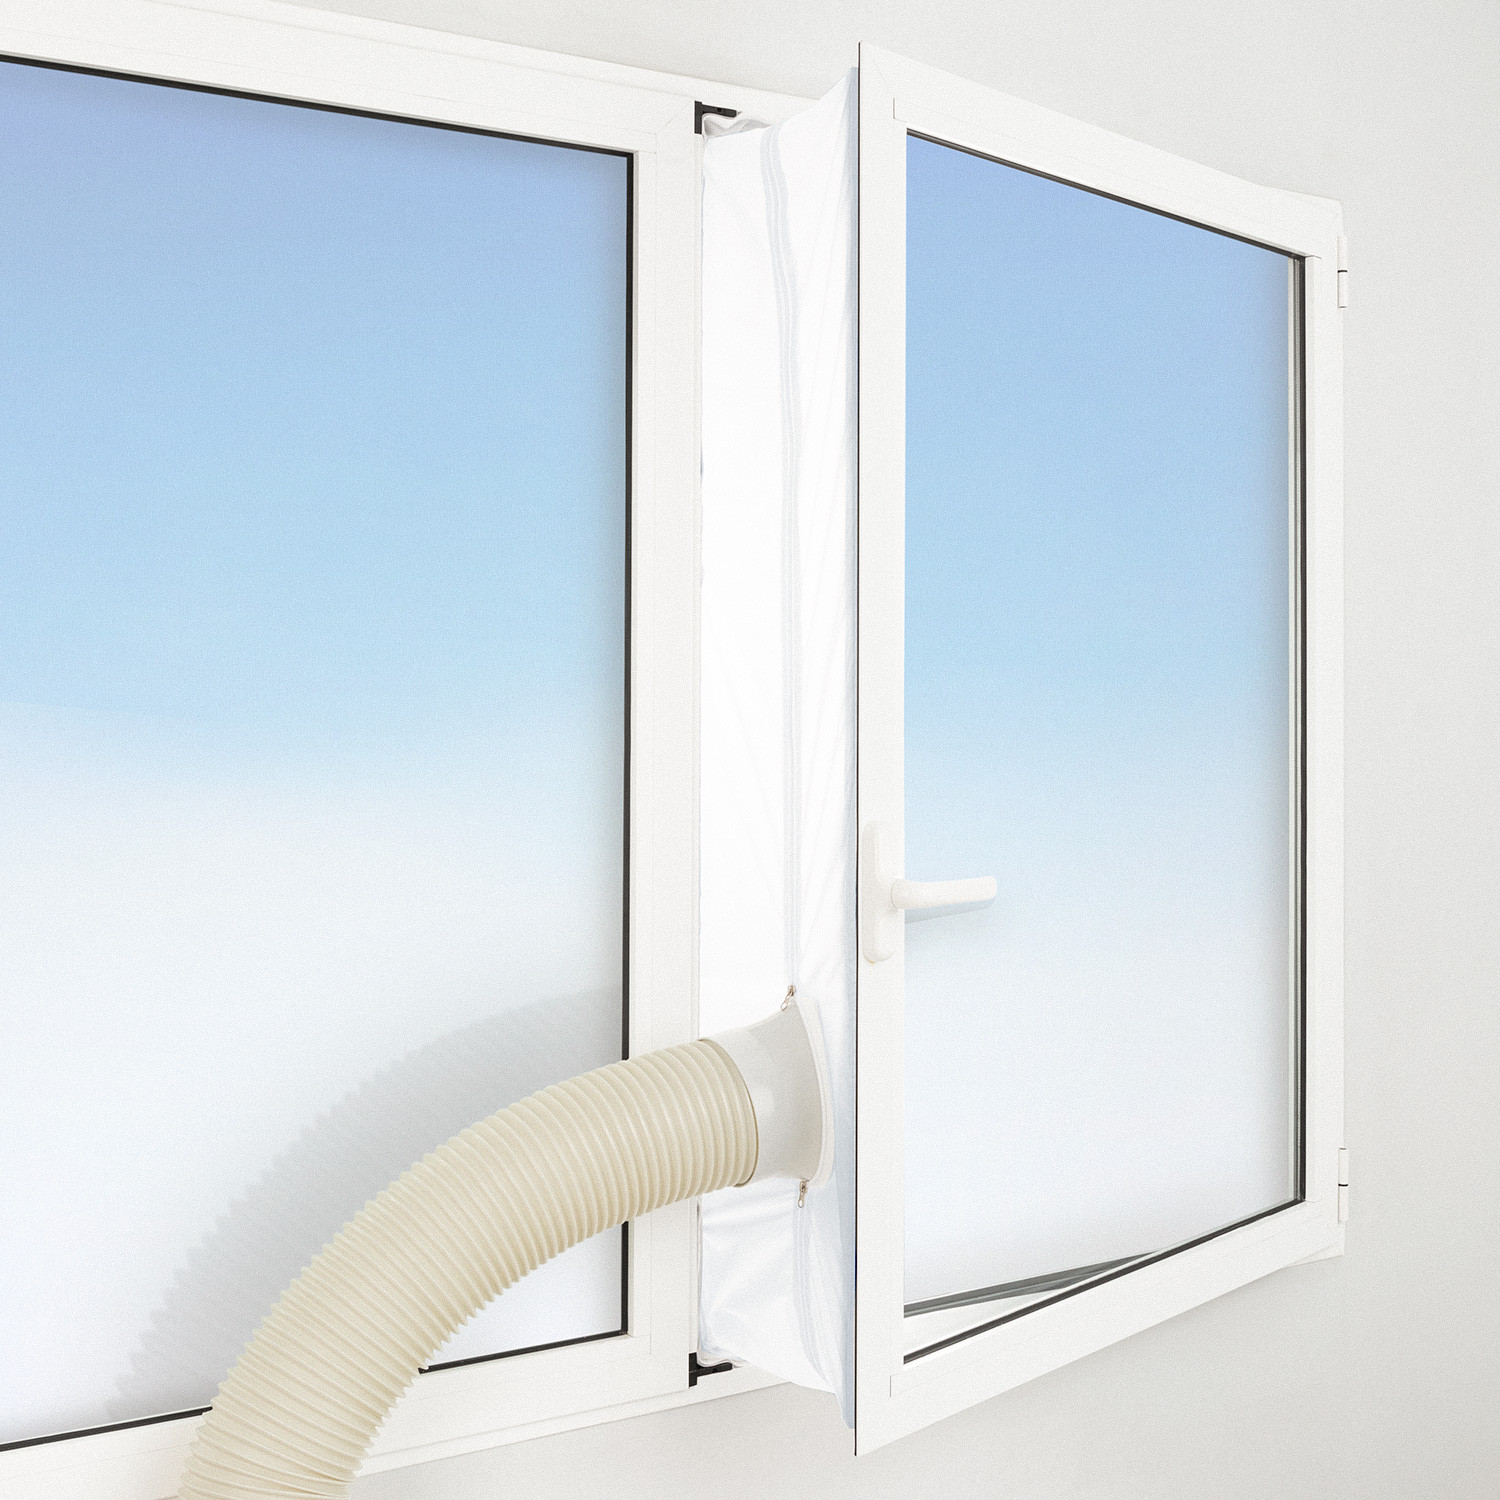 DRAWING WINDOWS REMOVAL AND INSULATION KIT FOR PORTABLE AIR CONDITIONERS, imagen de galería 1